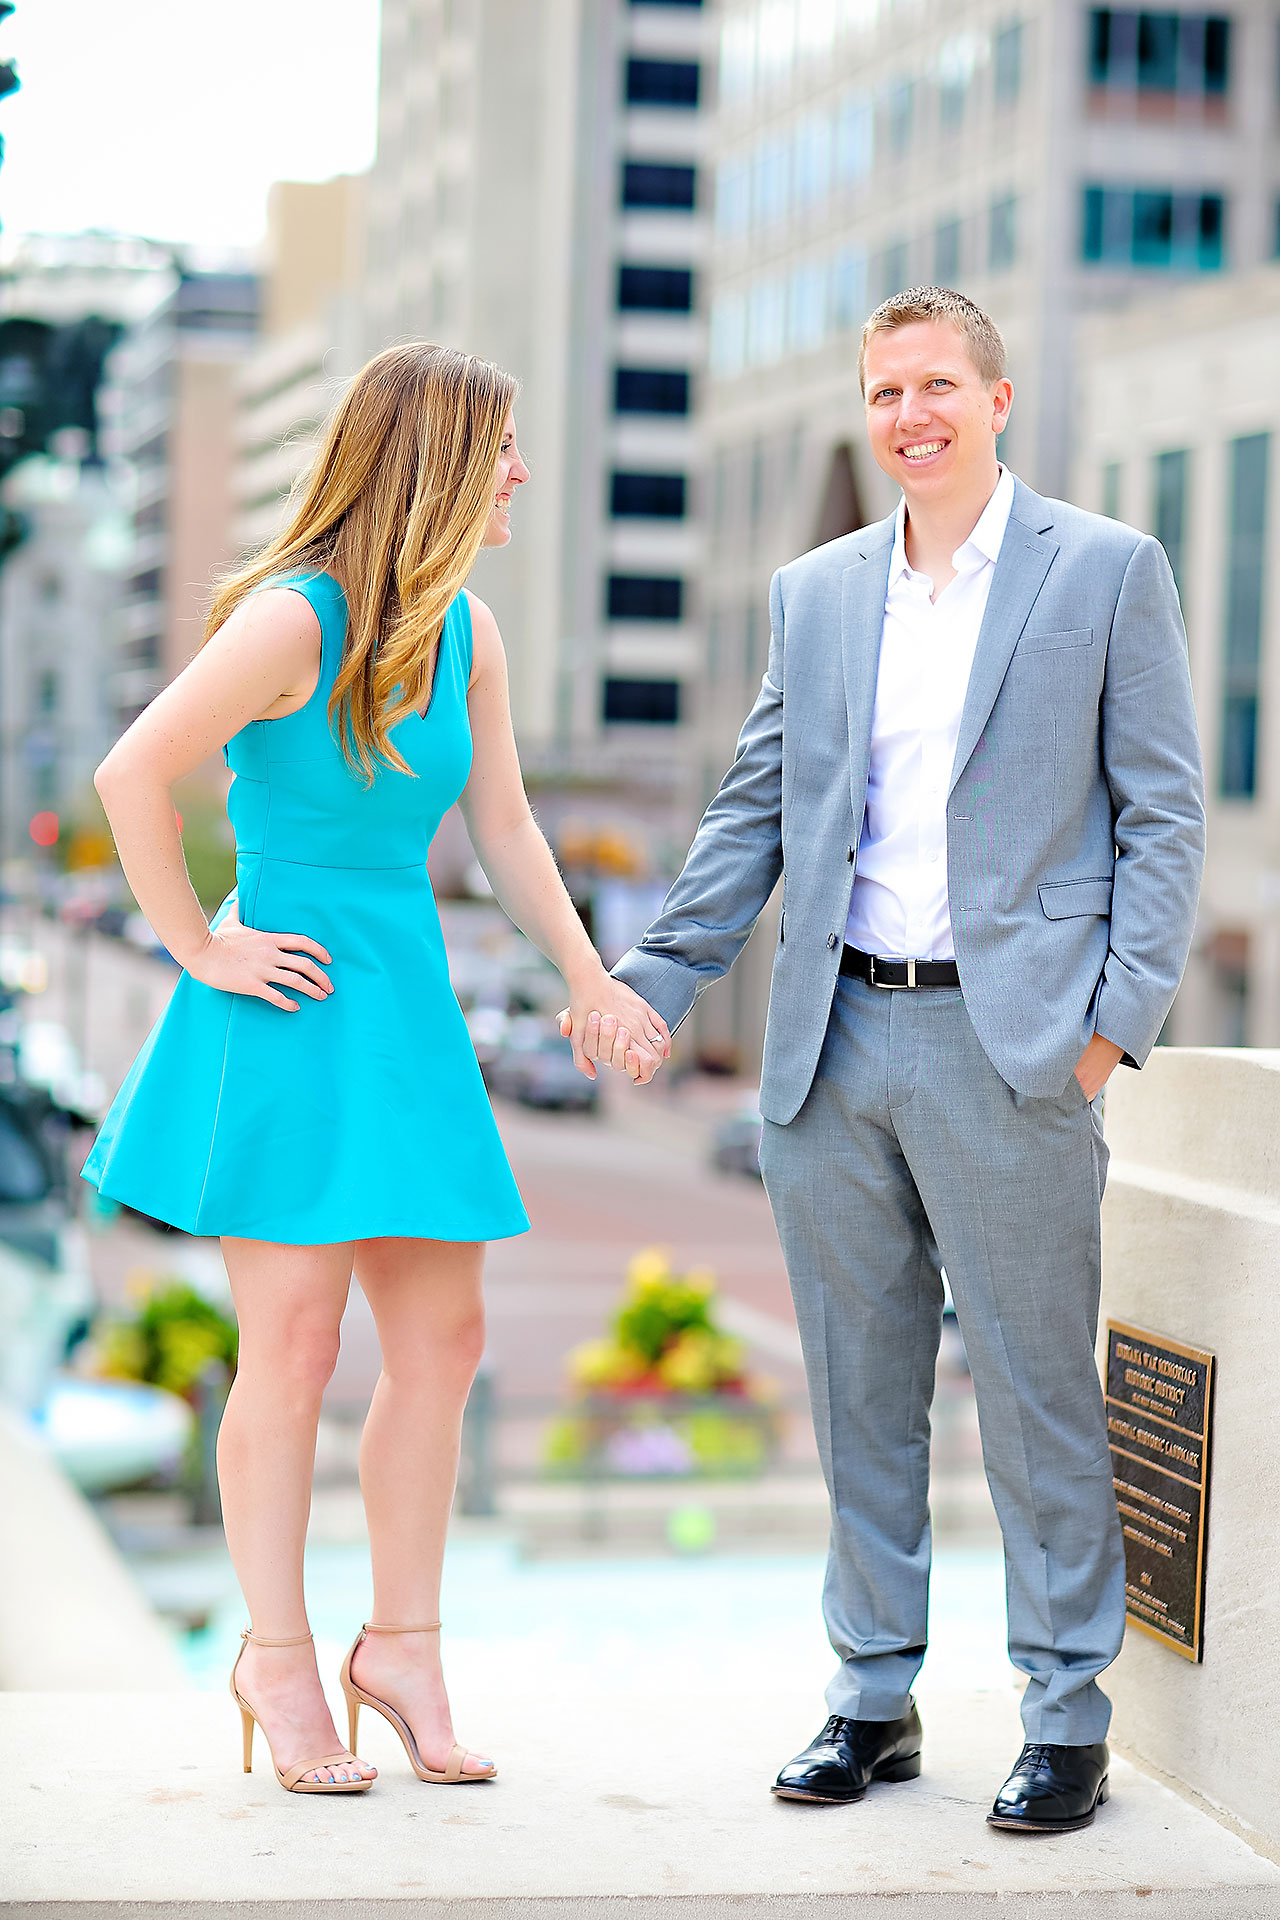 Chelsea Jeff Downtown Indy Engagement Session 061